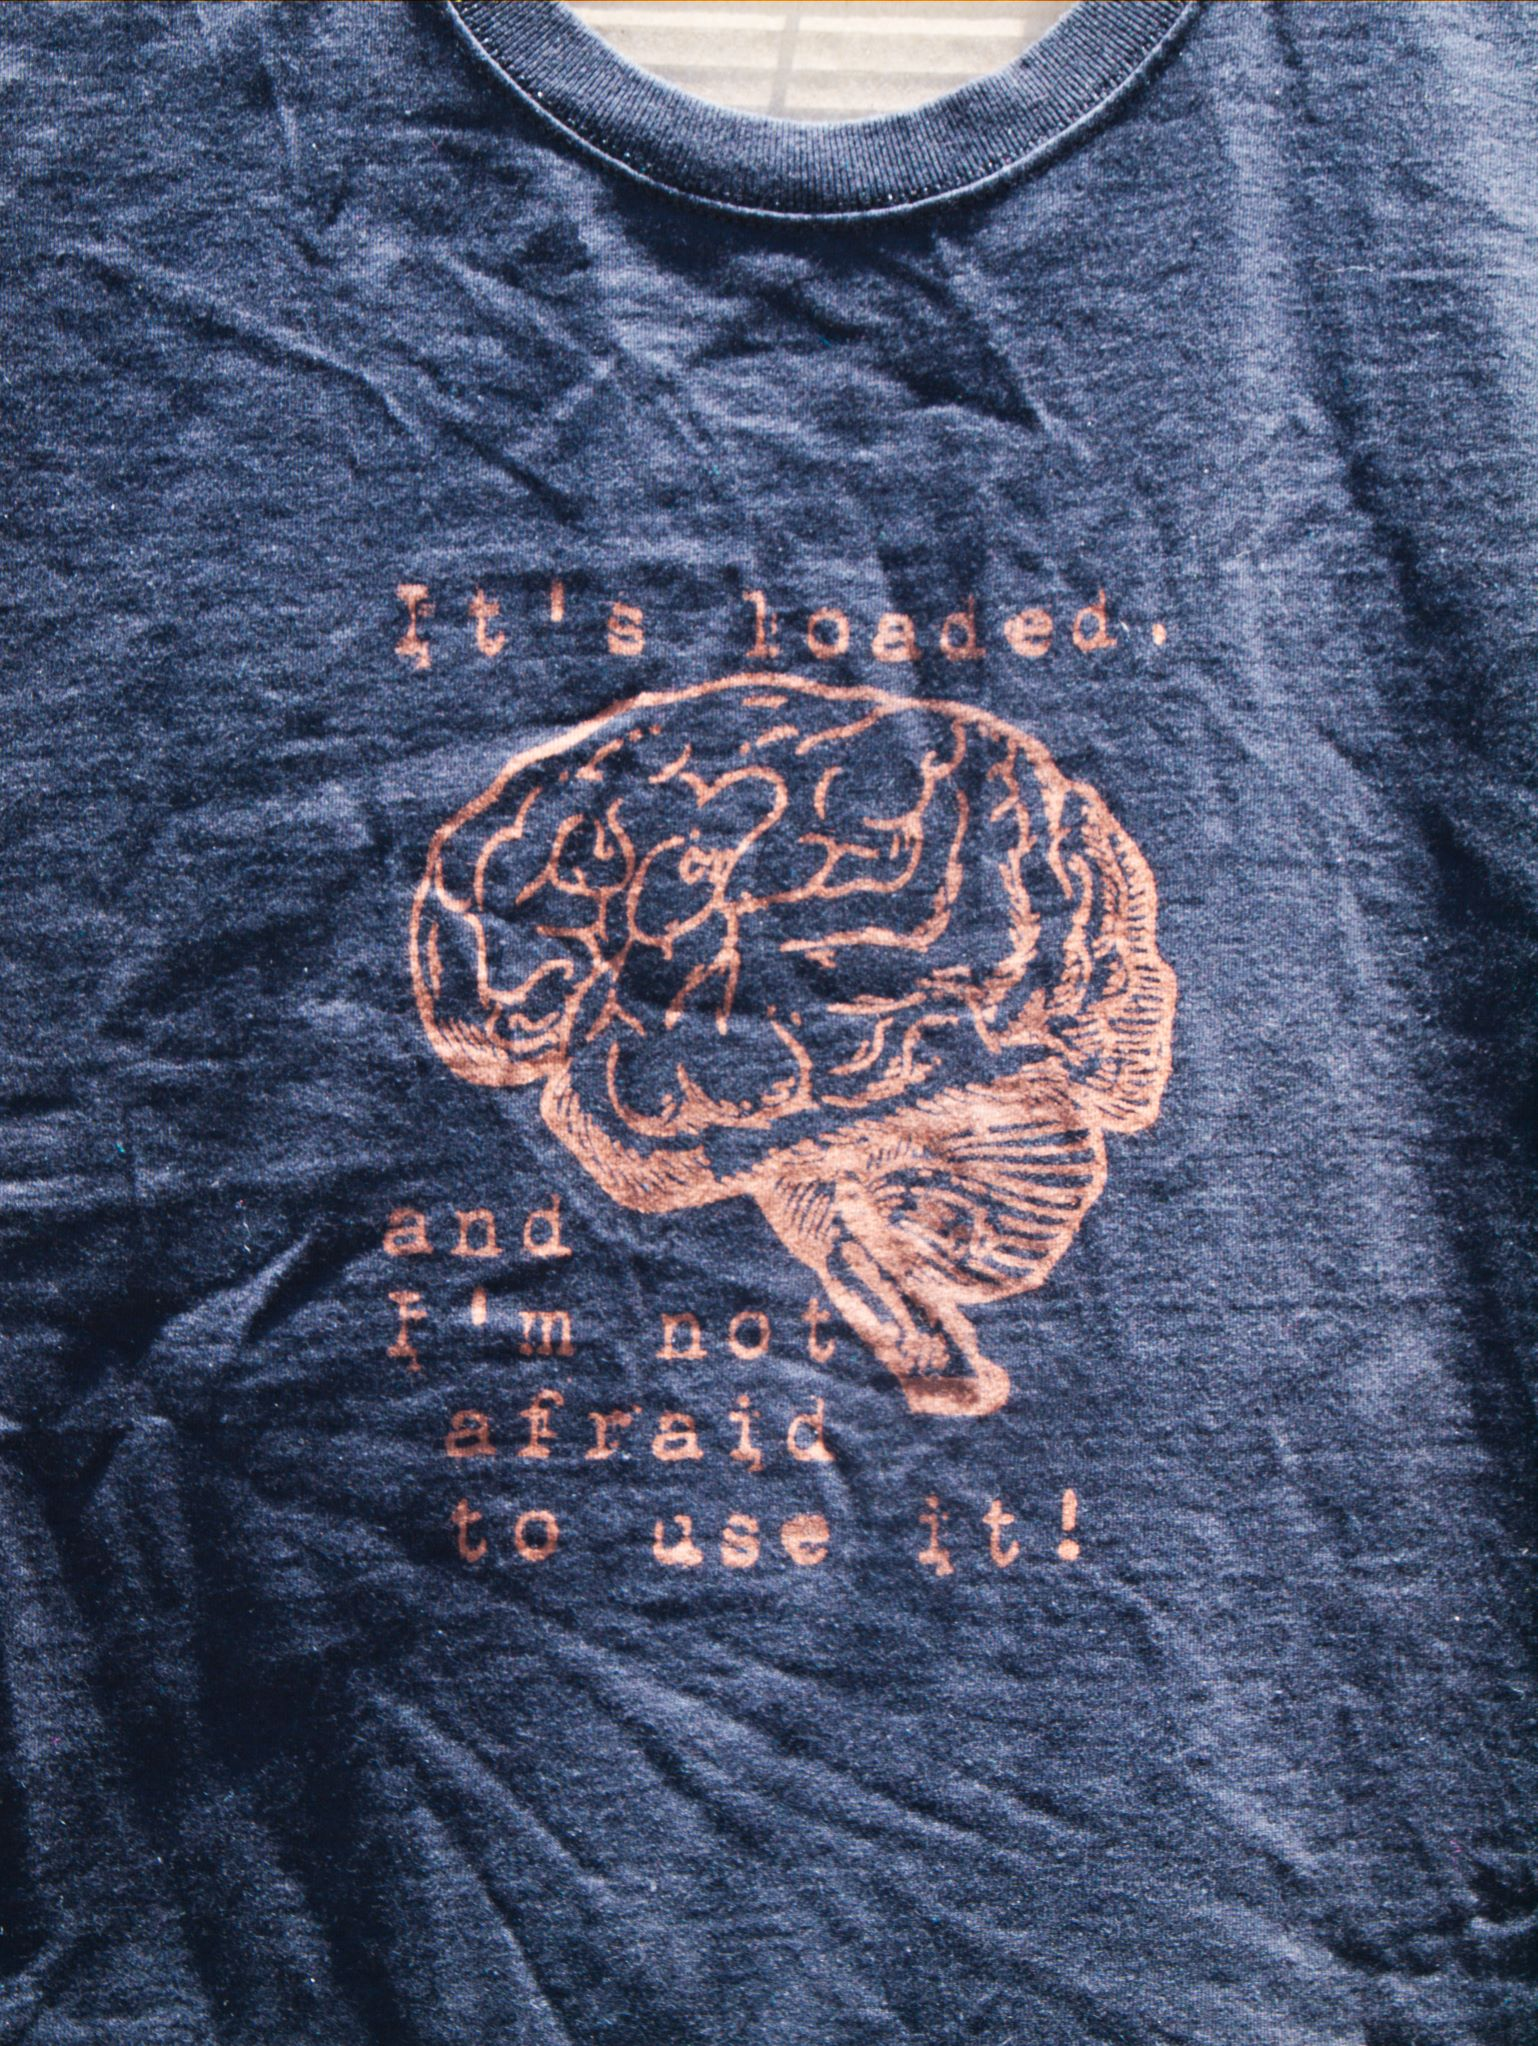 It's loaded and I'm not afraid to use it discharge tee shirt design with brain